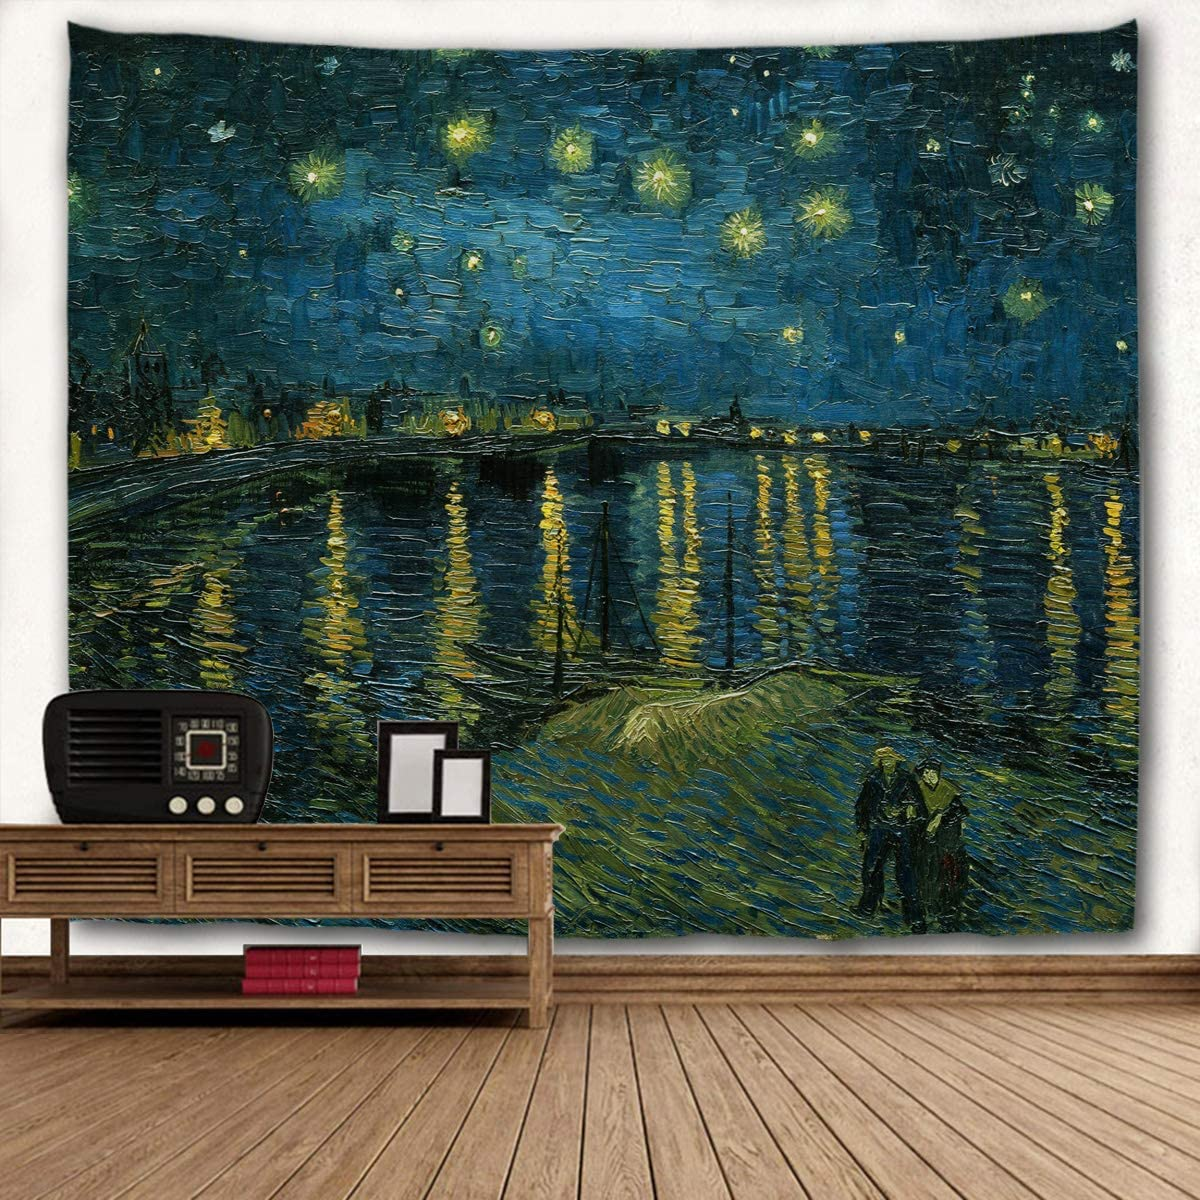 WIHVE Tapestry Van Gogh Starry Night Over The Rhone Wall Hanging Art Home Decor Polyester Tapestry for Living Room Bedroom Bathroom Kitchen Dorm 80 x 60 Inches